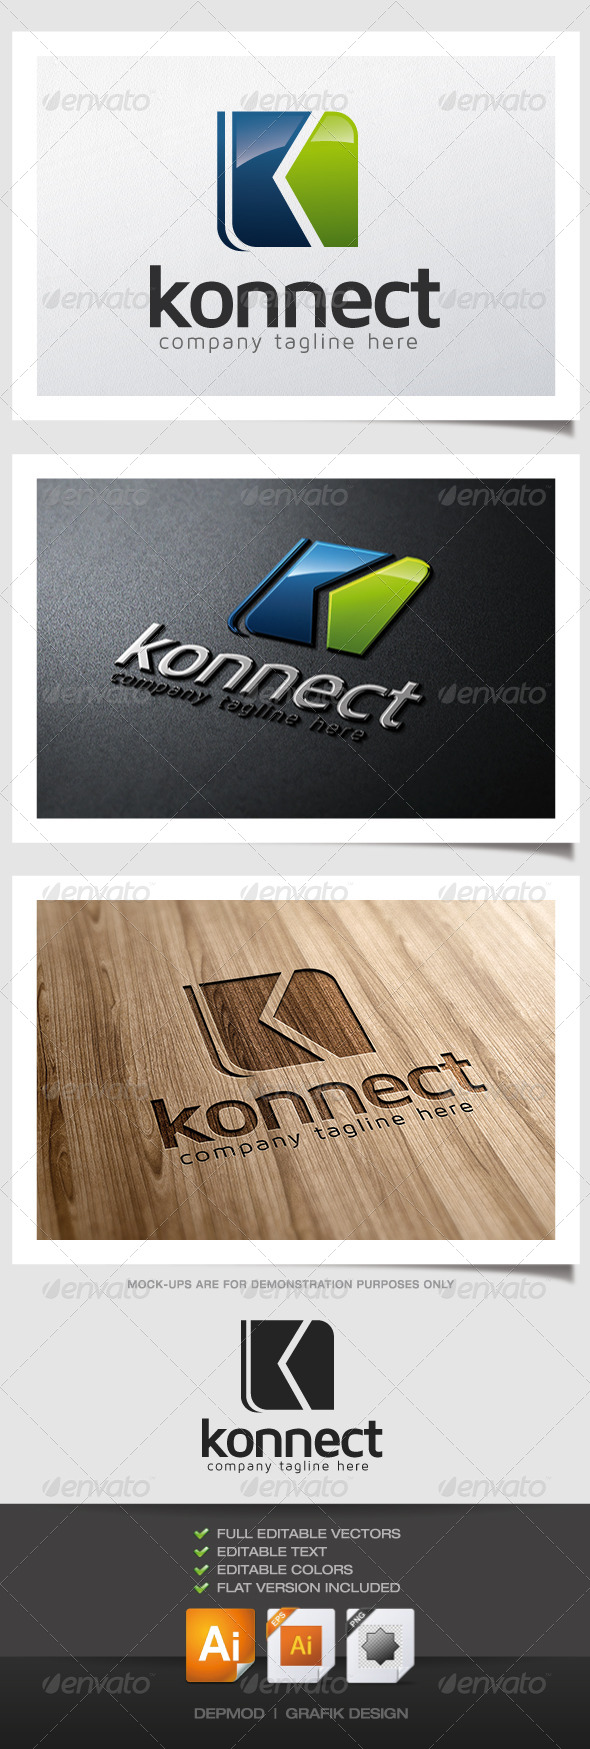 Konnect Logo - Abstract Logo Templates